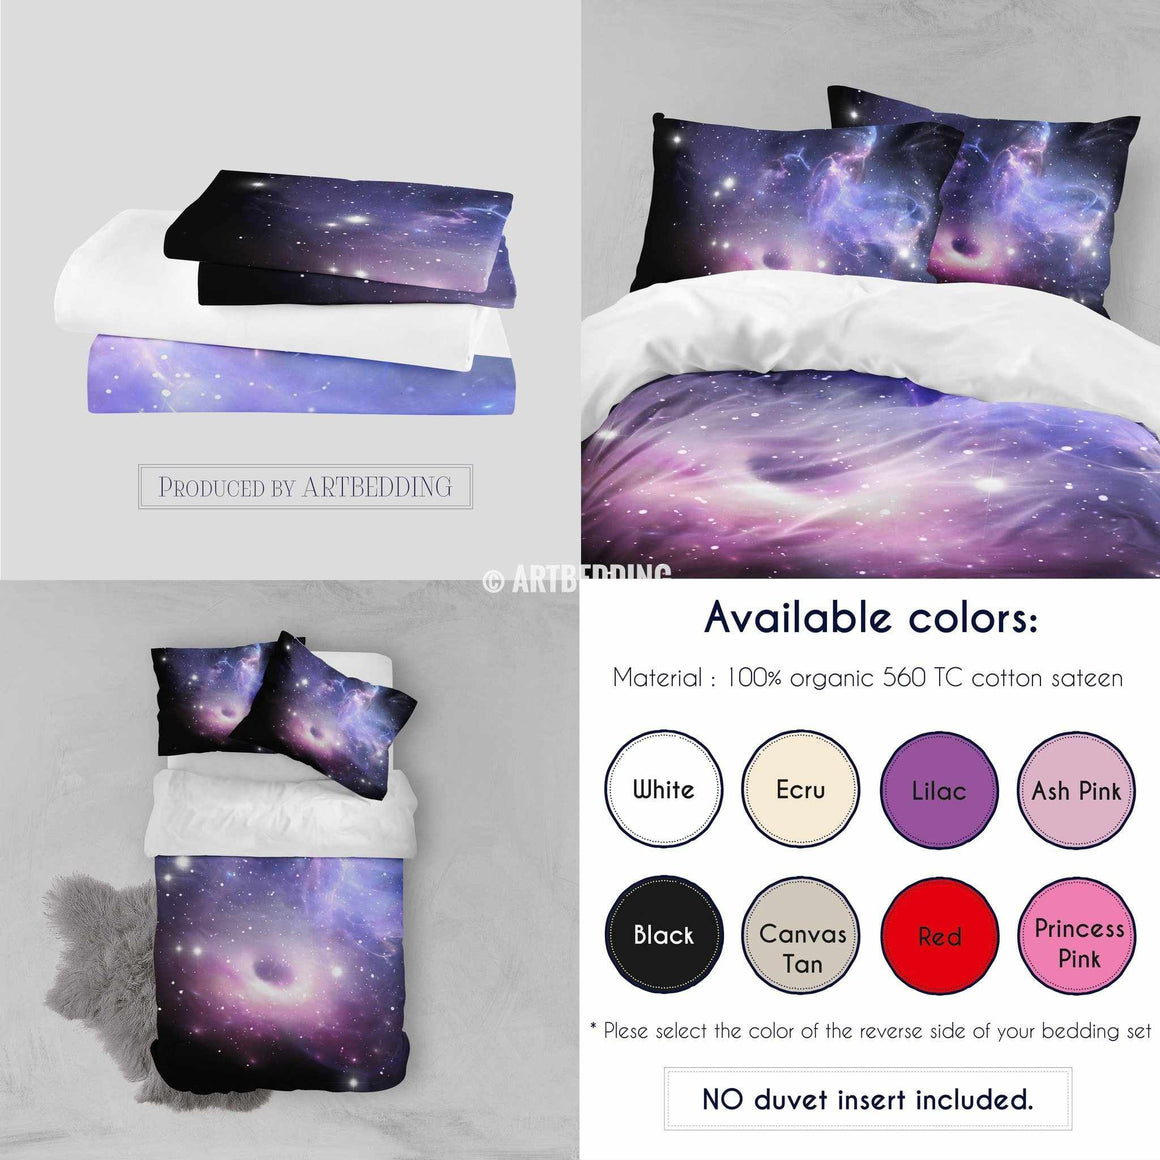 QUEEN size Purple black hole bedding set, Black hole formation in deep space duvet bedding set, Space moon bedroom decor